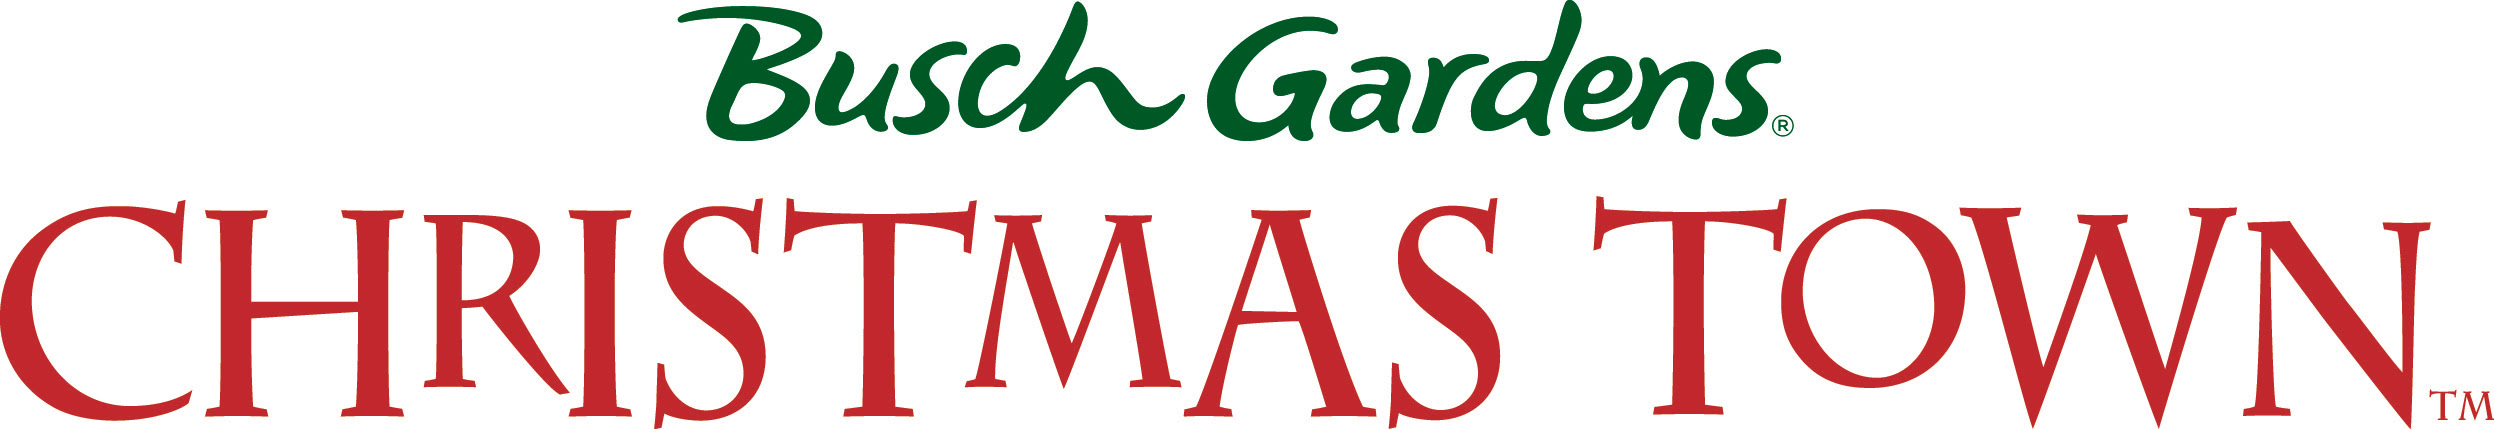 Olympic Medalist Stars In New Busch Gardens Christmas Town 2015 Ice Show Attraction Chasers